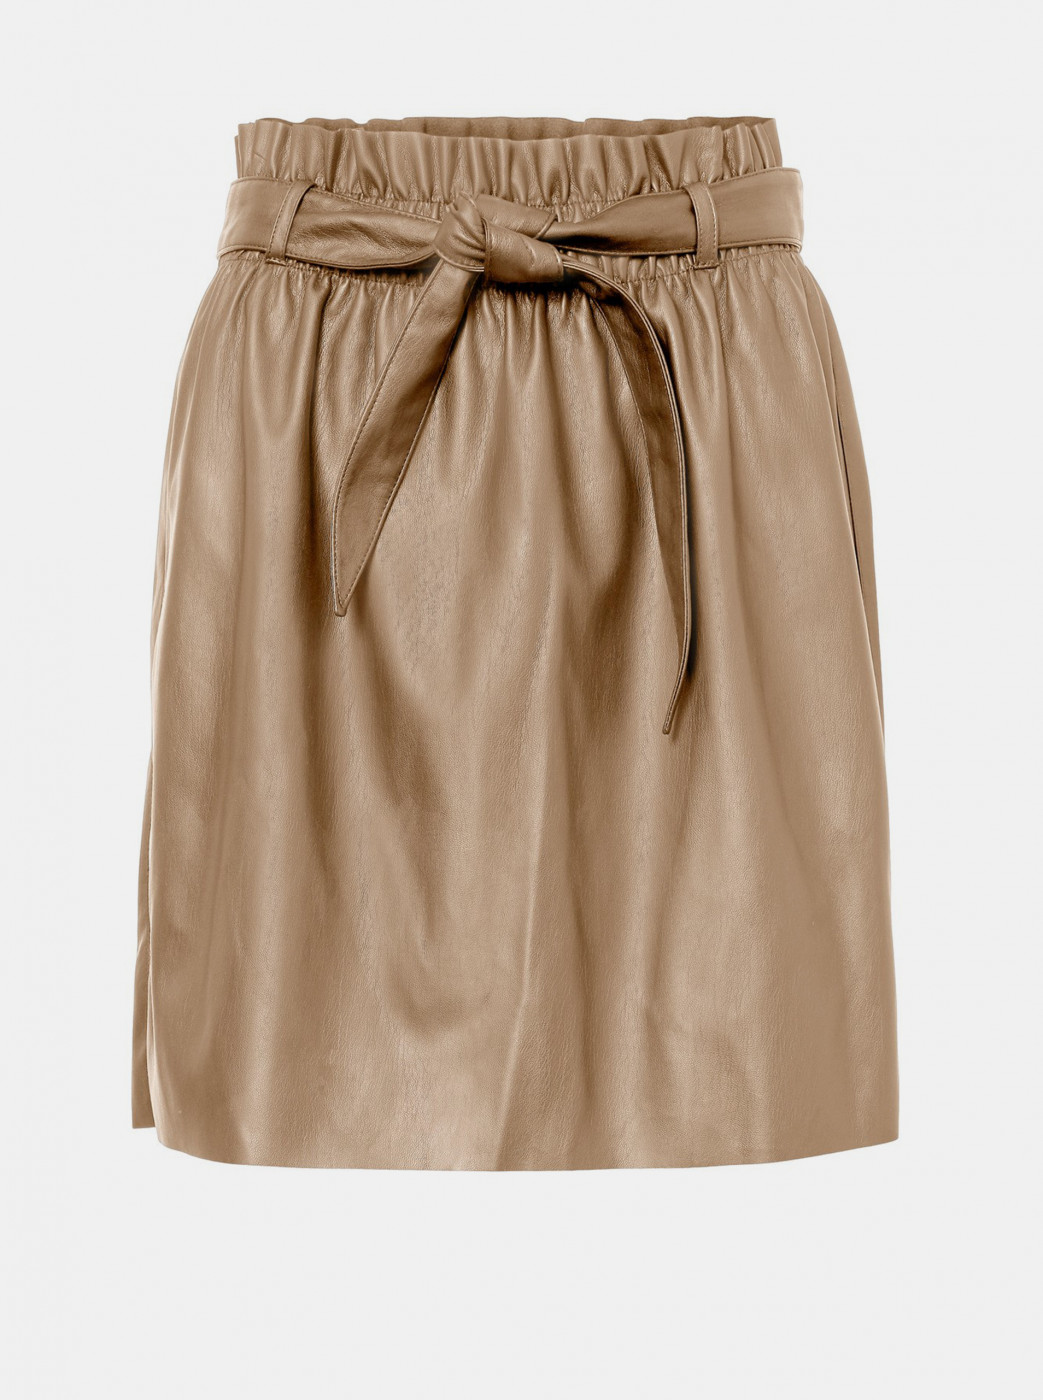 VERO MODA Award Beige Imitation Leather Skirt